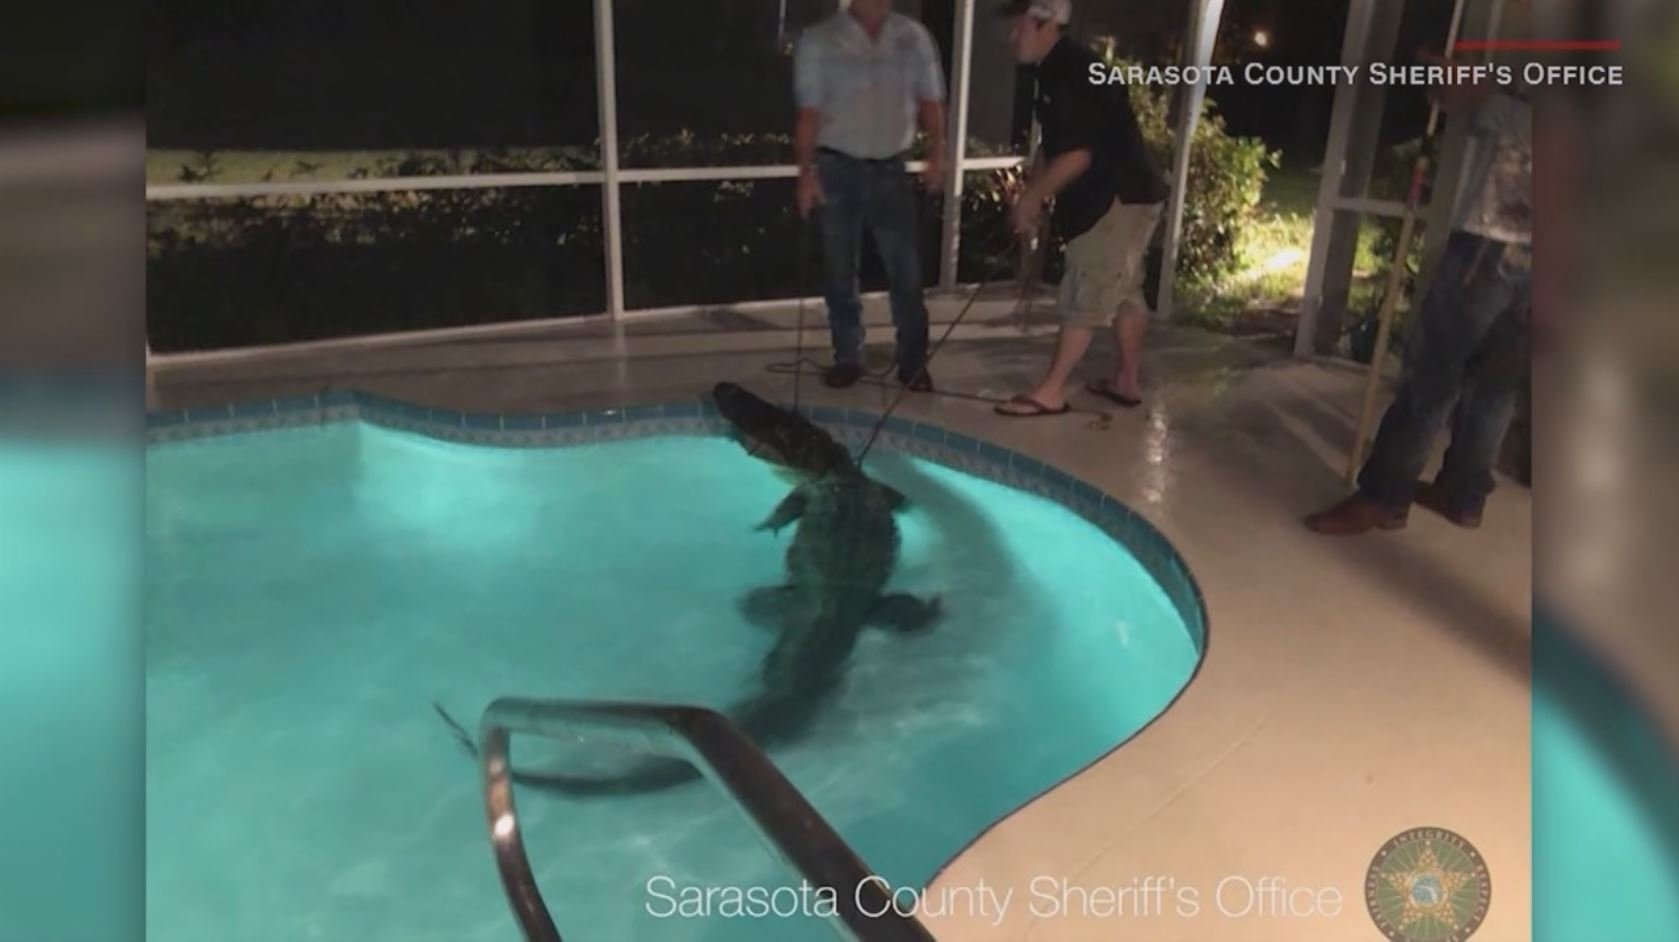 Homeowner finds 11-foot gator in swimming pool